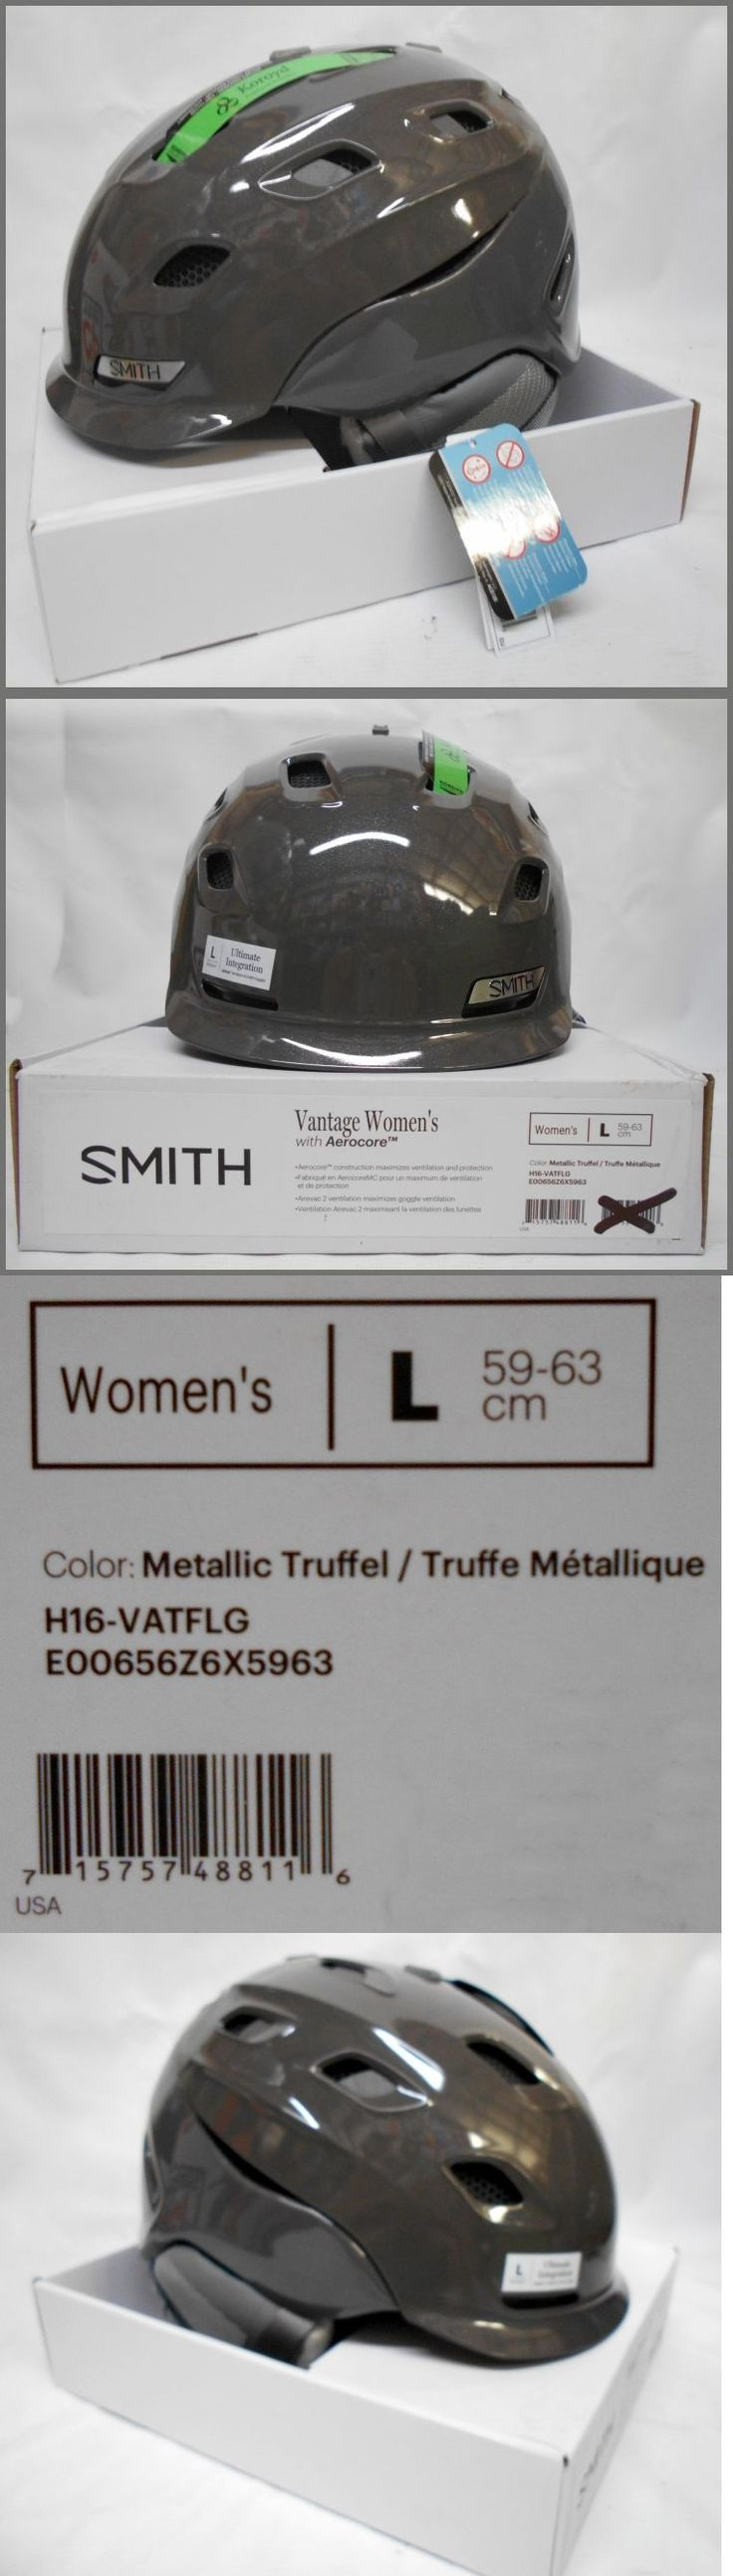 Protective Gear 36260: Large Smith Optics Womens Adult Vantage Snow Winter Helmet - Metallic Truffel -> BUY IT NOW ONLY: $99.99 on eBay!